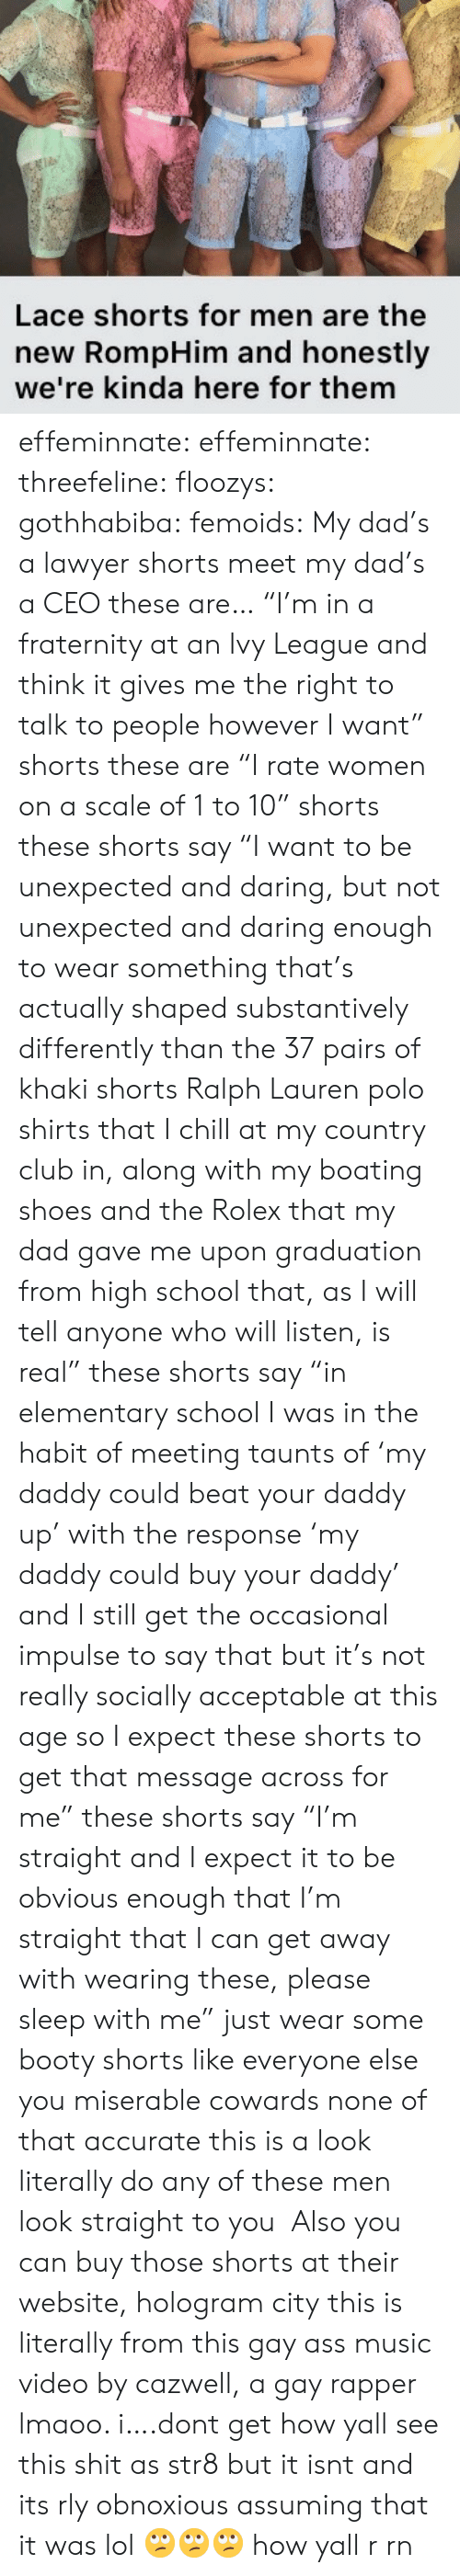 "Ralph Lauren: Lace shorts for men are the  new RompHim and honestly  we're kinda here for them effeminnate:  effeminnate:   threefeline:   floozys:  gothhabiba:  femoids: My dad's a lawyer shorts meet my dad's a CEO these are… ""I'm in a fraternity at an Ivy League and think it gives me the right to talk to people however I want"" shorts these are ""I rate women on a scale of 1 to 10"" shorts these shorts say ""I want to be unexpected and daring, but not unexpected and daring enough to wear something that's actually shaped substantively differently than the 37 pairs of khaki shorts  Ralph Lauren polo shirts that I chill at my country club in, along with my boating shoes and the Rolex that my dad gave me upon graduation from high school that, as I will tell anyone who will listen, is real"" these shorts say ""in elementary school I was in the habit of meeting taunts of 'my daddy could beat your daddy up' with the response 'my daddy could buy your daddy' and I still get the occasional impulse to say that but it's not really socially acceptable at this age so I expect these shorts to get that message across for me"" these shorts say ""I'm straight and I expect it to be obvious enough that I'm straight that I can get away with wearing these, please sleep with me"" just wear some booty shorts like everyone else you miserable cowards  none of that accurate this is a look  literally do any of these men look straight to you  Also you can buy those shorts at their website, hologram city   this is literally from this gay ass music video by cazwell, a gay rapper lmaoo. i….dont get how yall see this shit as str8 but it isnt and its rly obnoxious assuming that it was lol 🙄🙄🙄   how yall r rn"